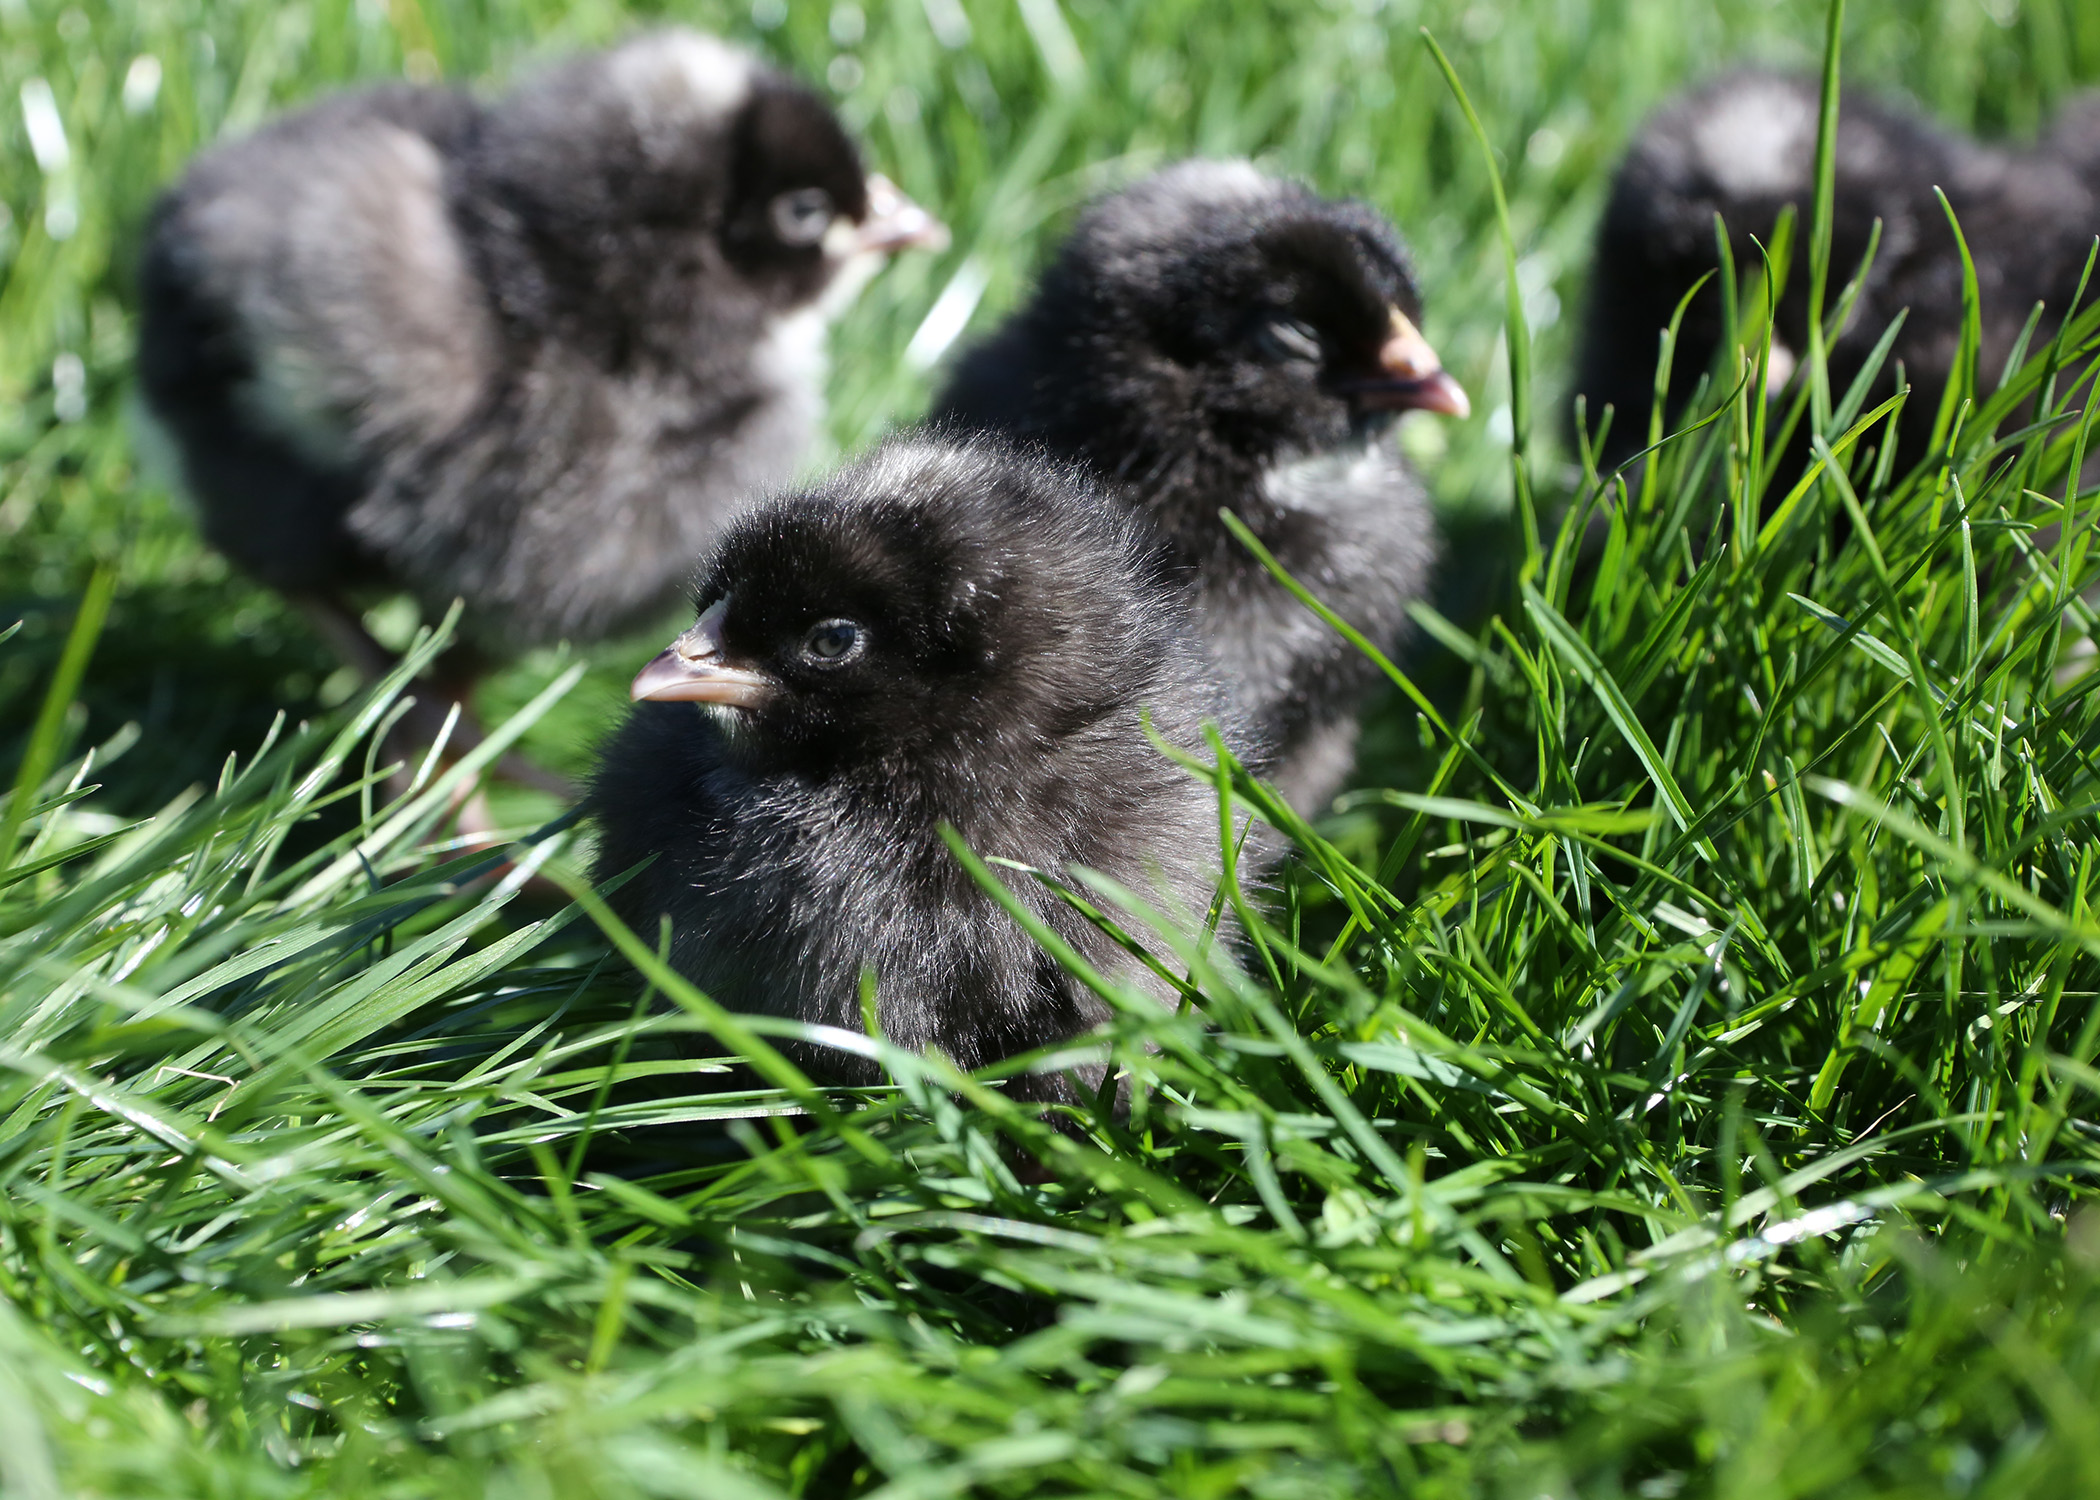 Young chicks covered in gray and black down explore green grass on a sunny day.